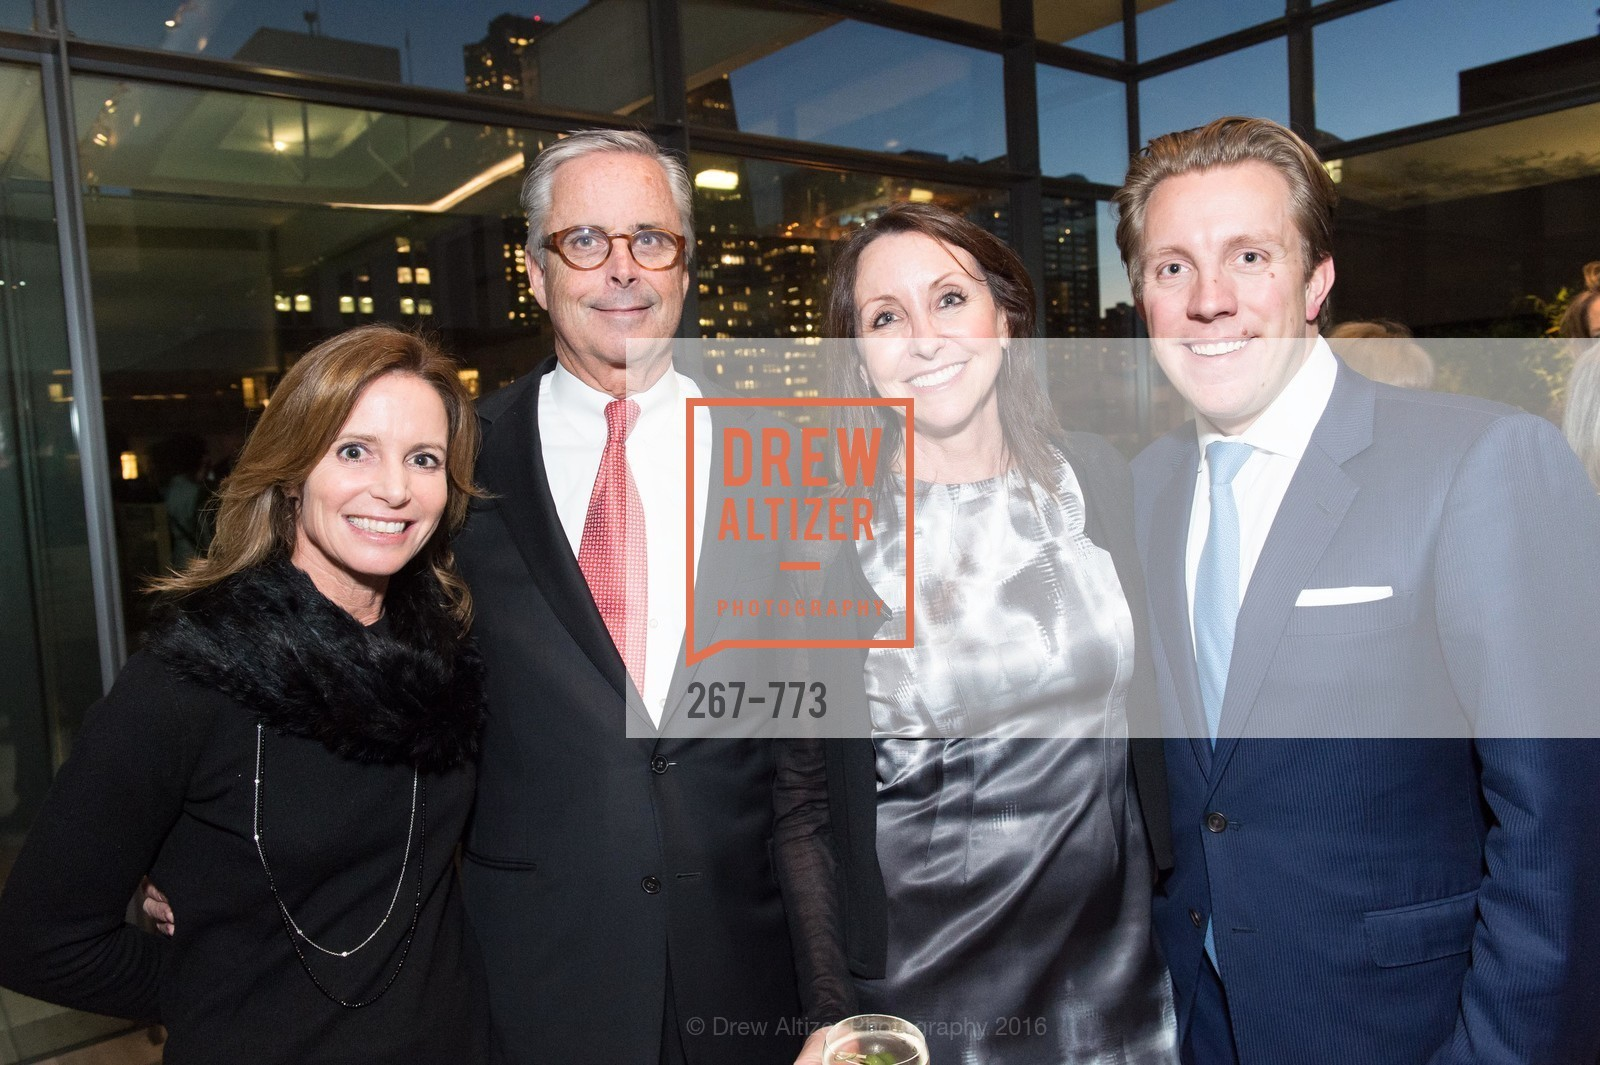 Carrie Goodman, Jack Cotton, Lisa Miller, Brad Nelson, Sotheby's International Realty's Celebrates the New Year, The Battery, Penthouse. 717 Battery St, January 27th, 2016,Drew Altizer, Drew Altizer Photography, full-service agency, private events, San Francisco photographer, photographer california